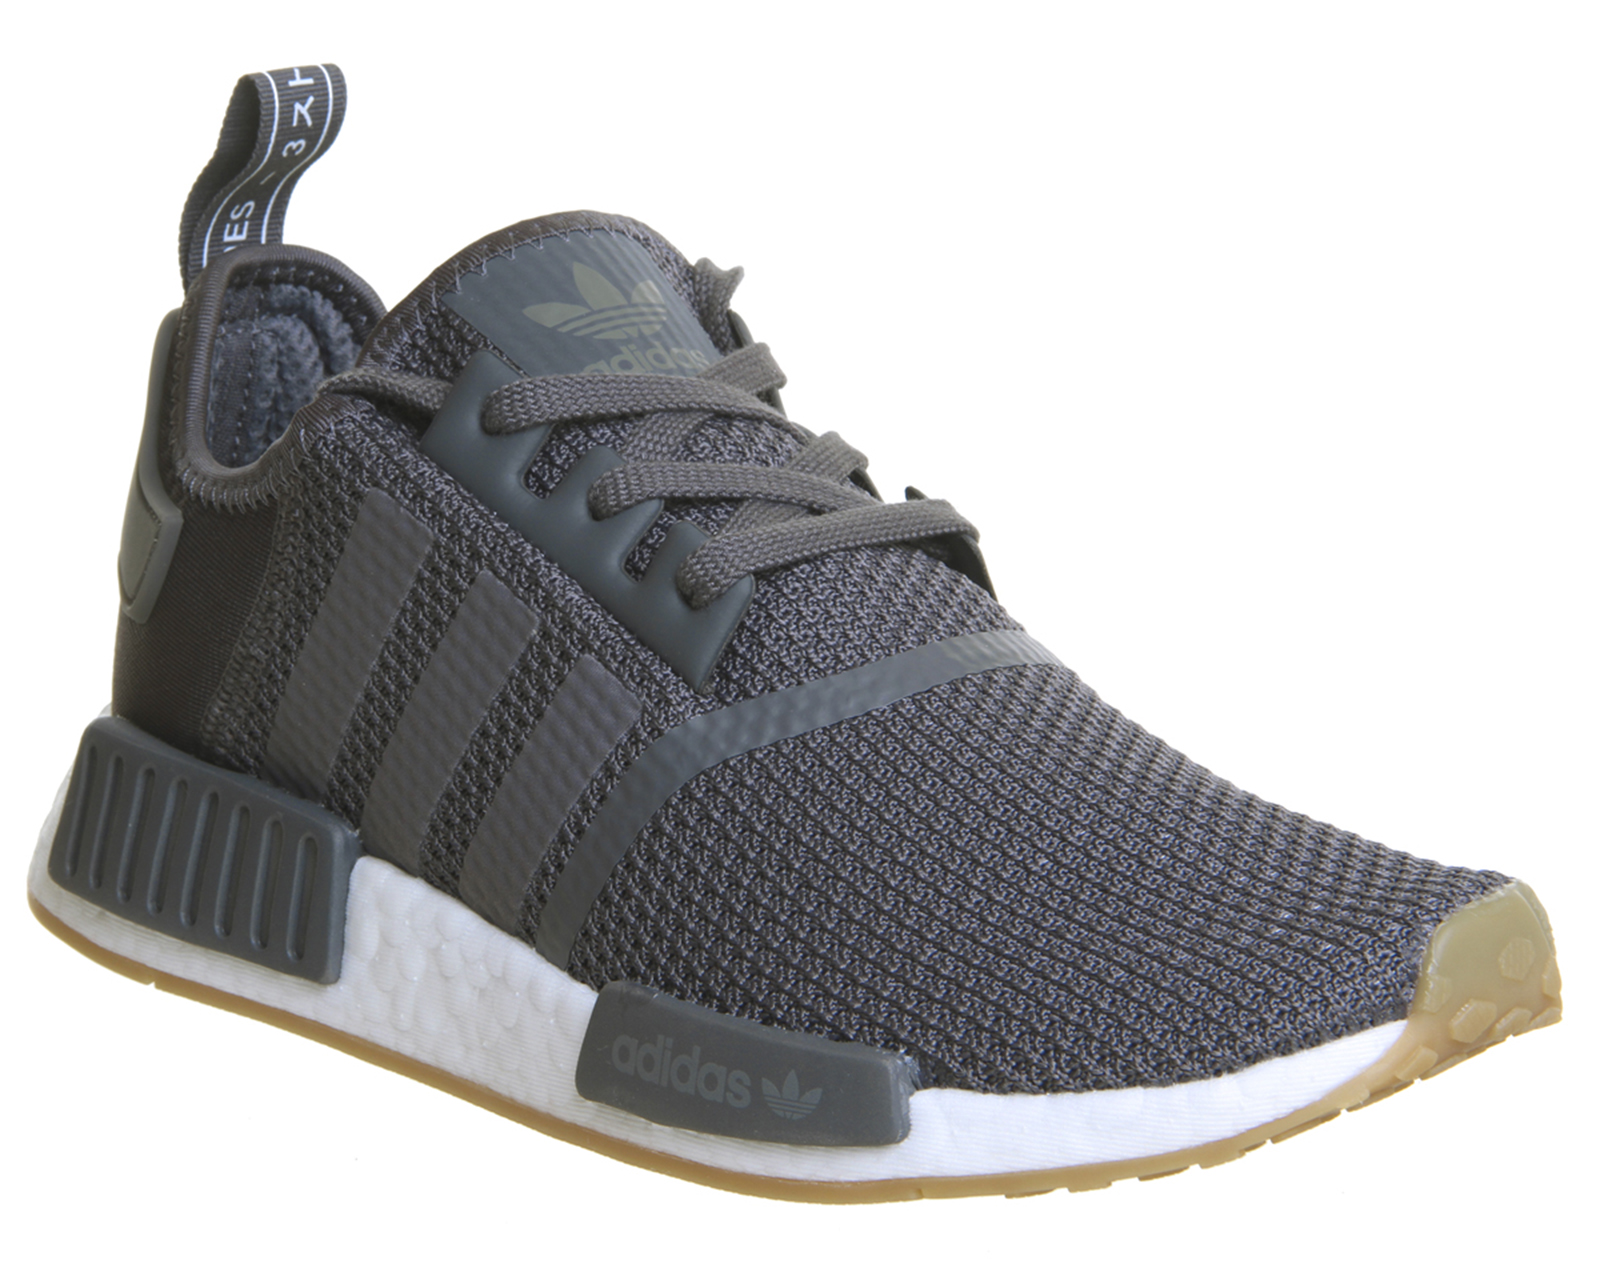 d4e3a0128b95 Sentinel Adidas Nmd R1 Trainers Grey Grey Core Black Trainers Shoes